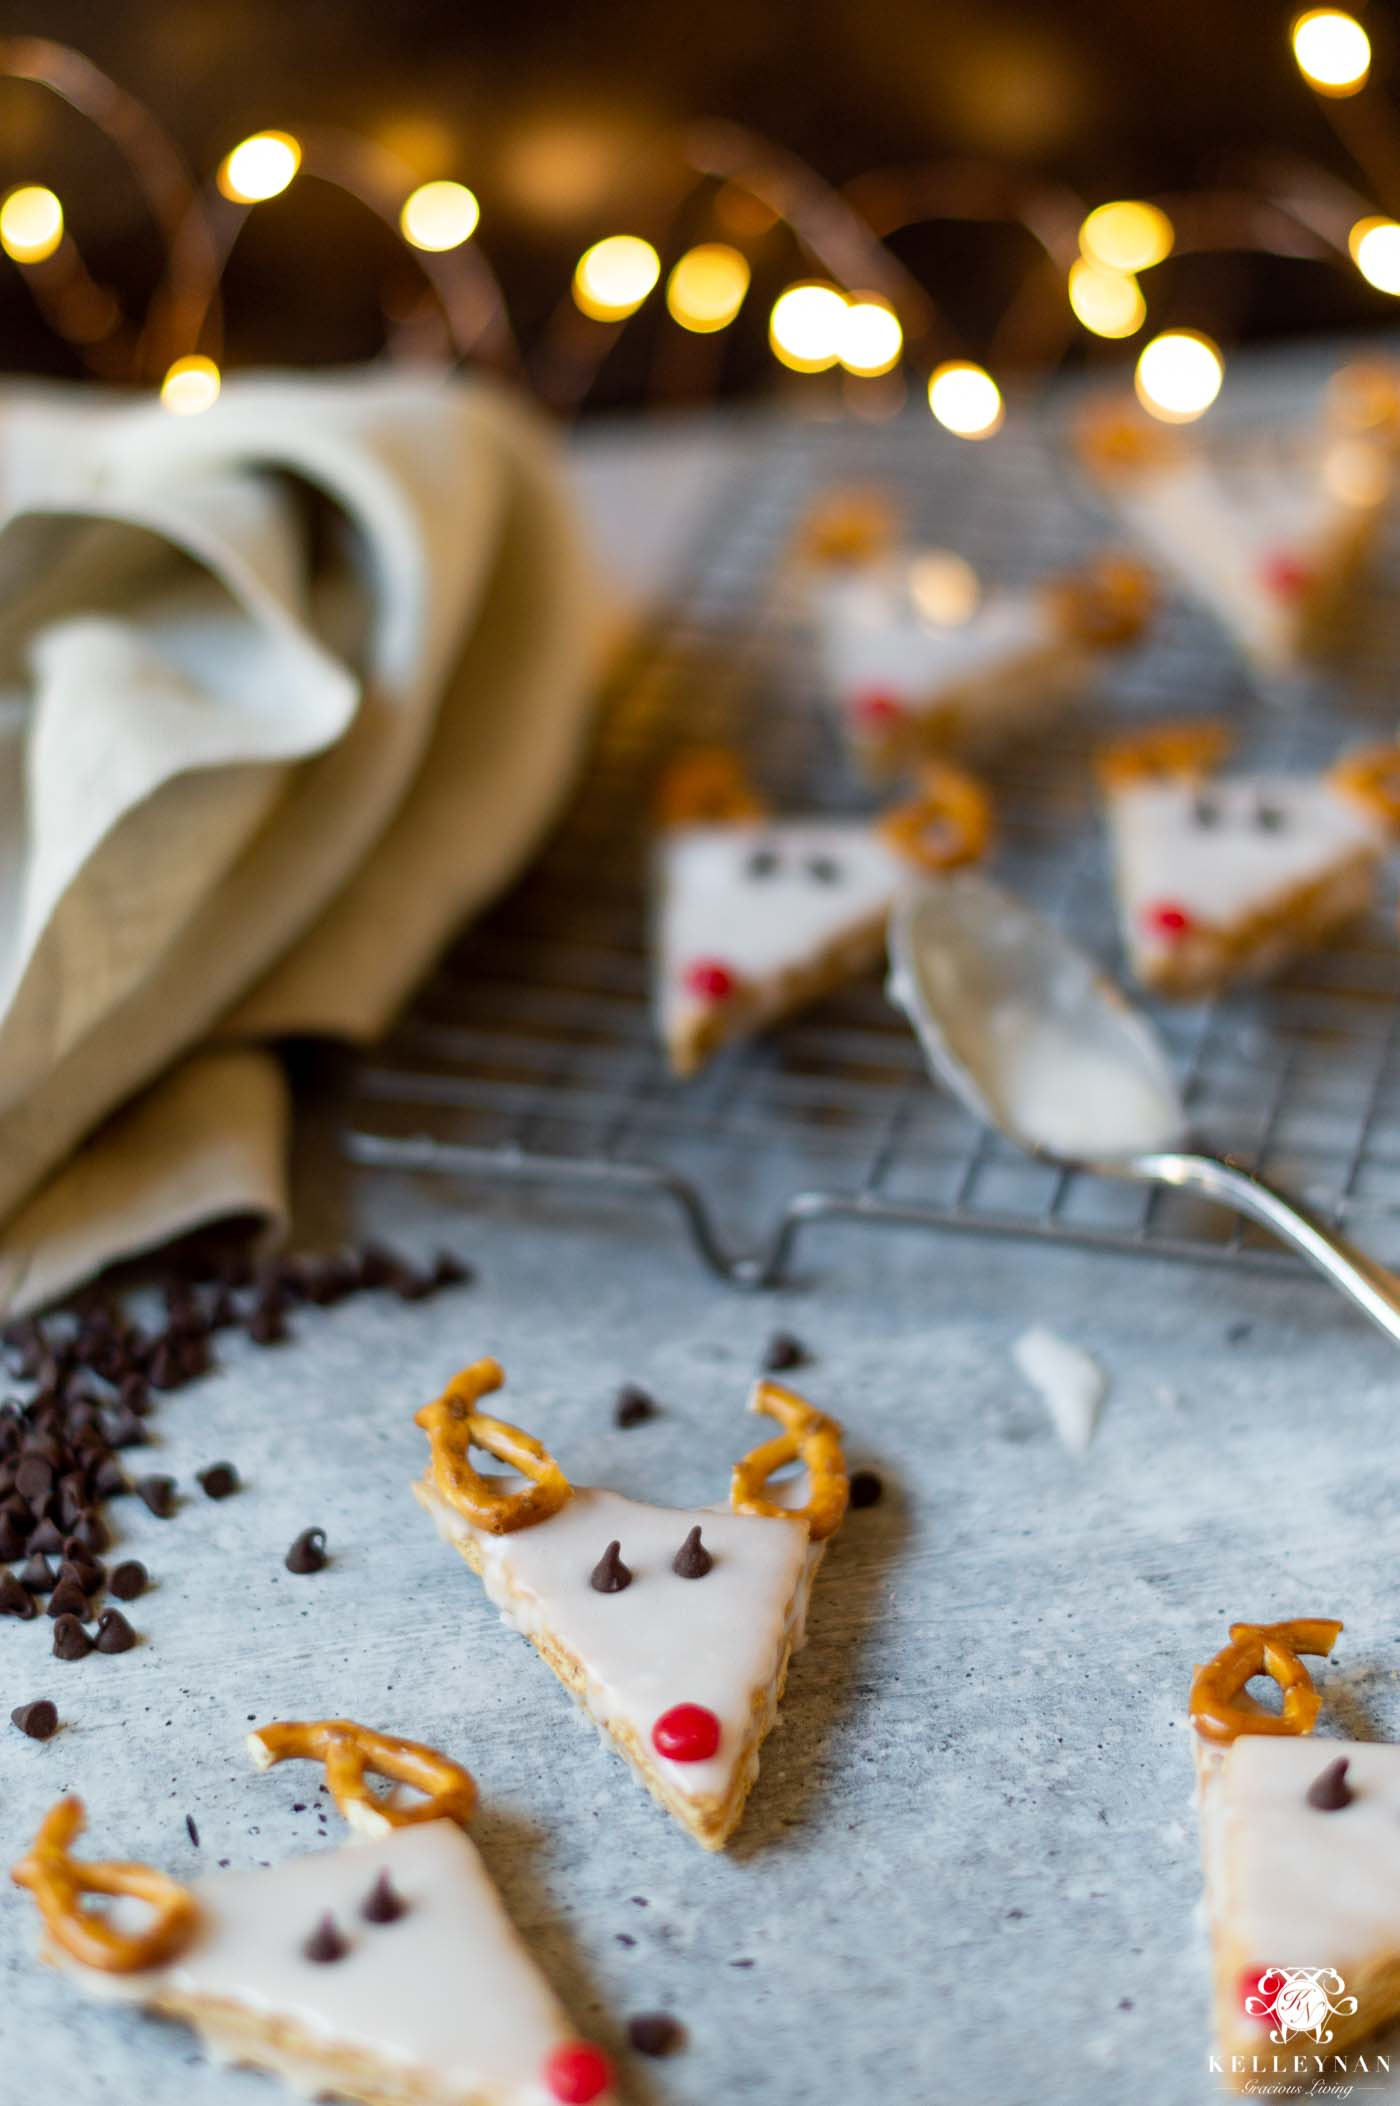 5 EASY Christmas Treats with 5 Ingredients (or less!) Reindeer Graham Cracker Cookies are a Kid-Friendly Winner!